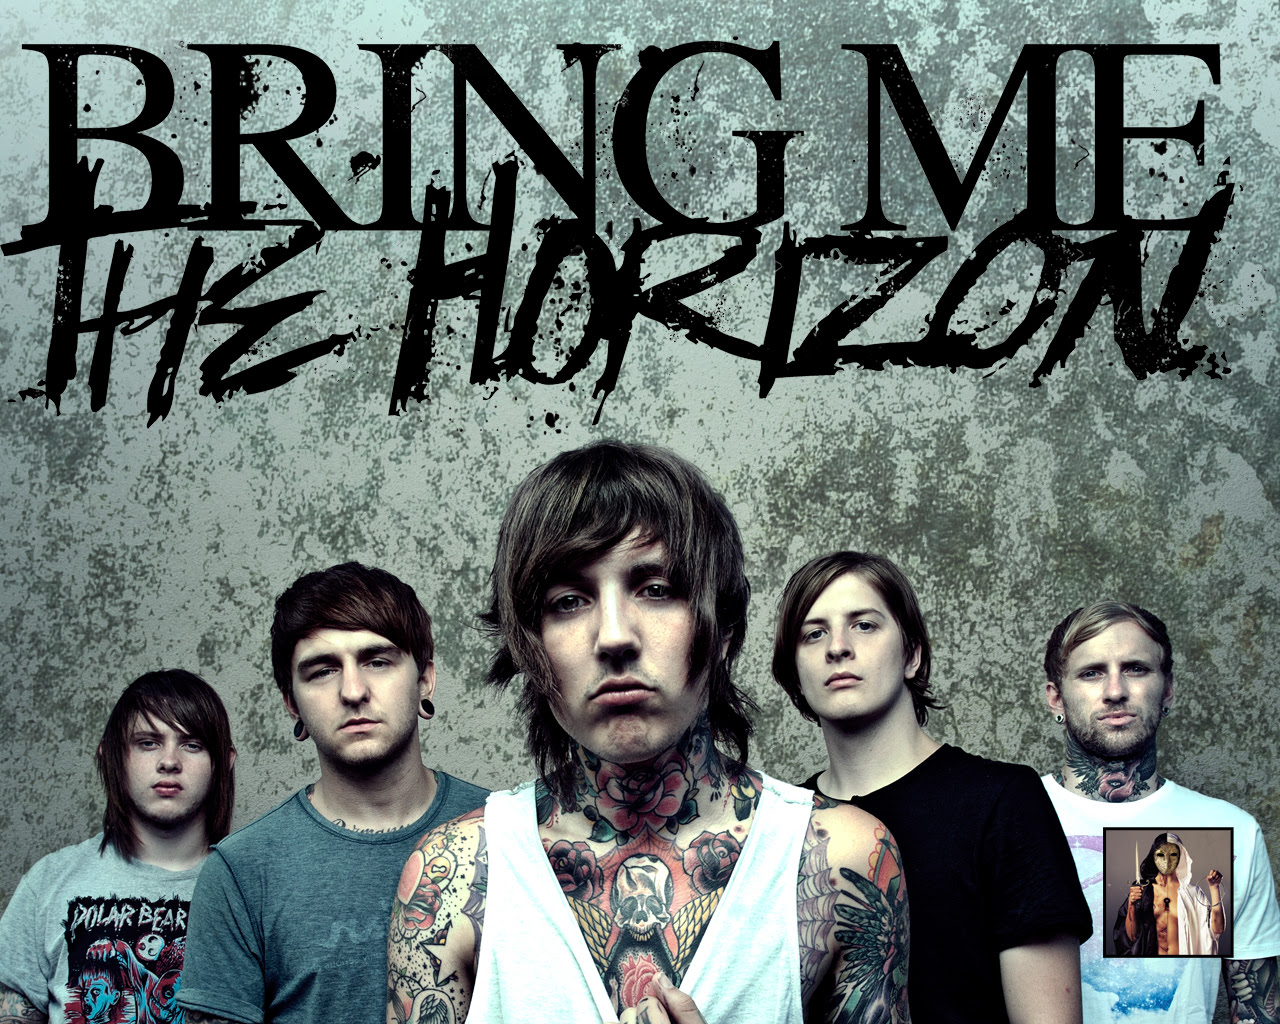 Bring Me The Horizon Wallpaper 1280x1024 80433